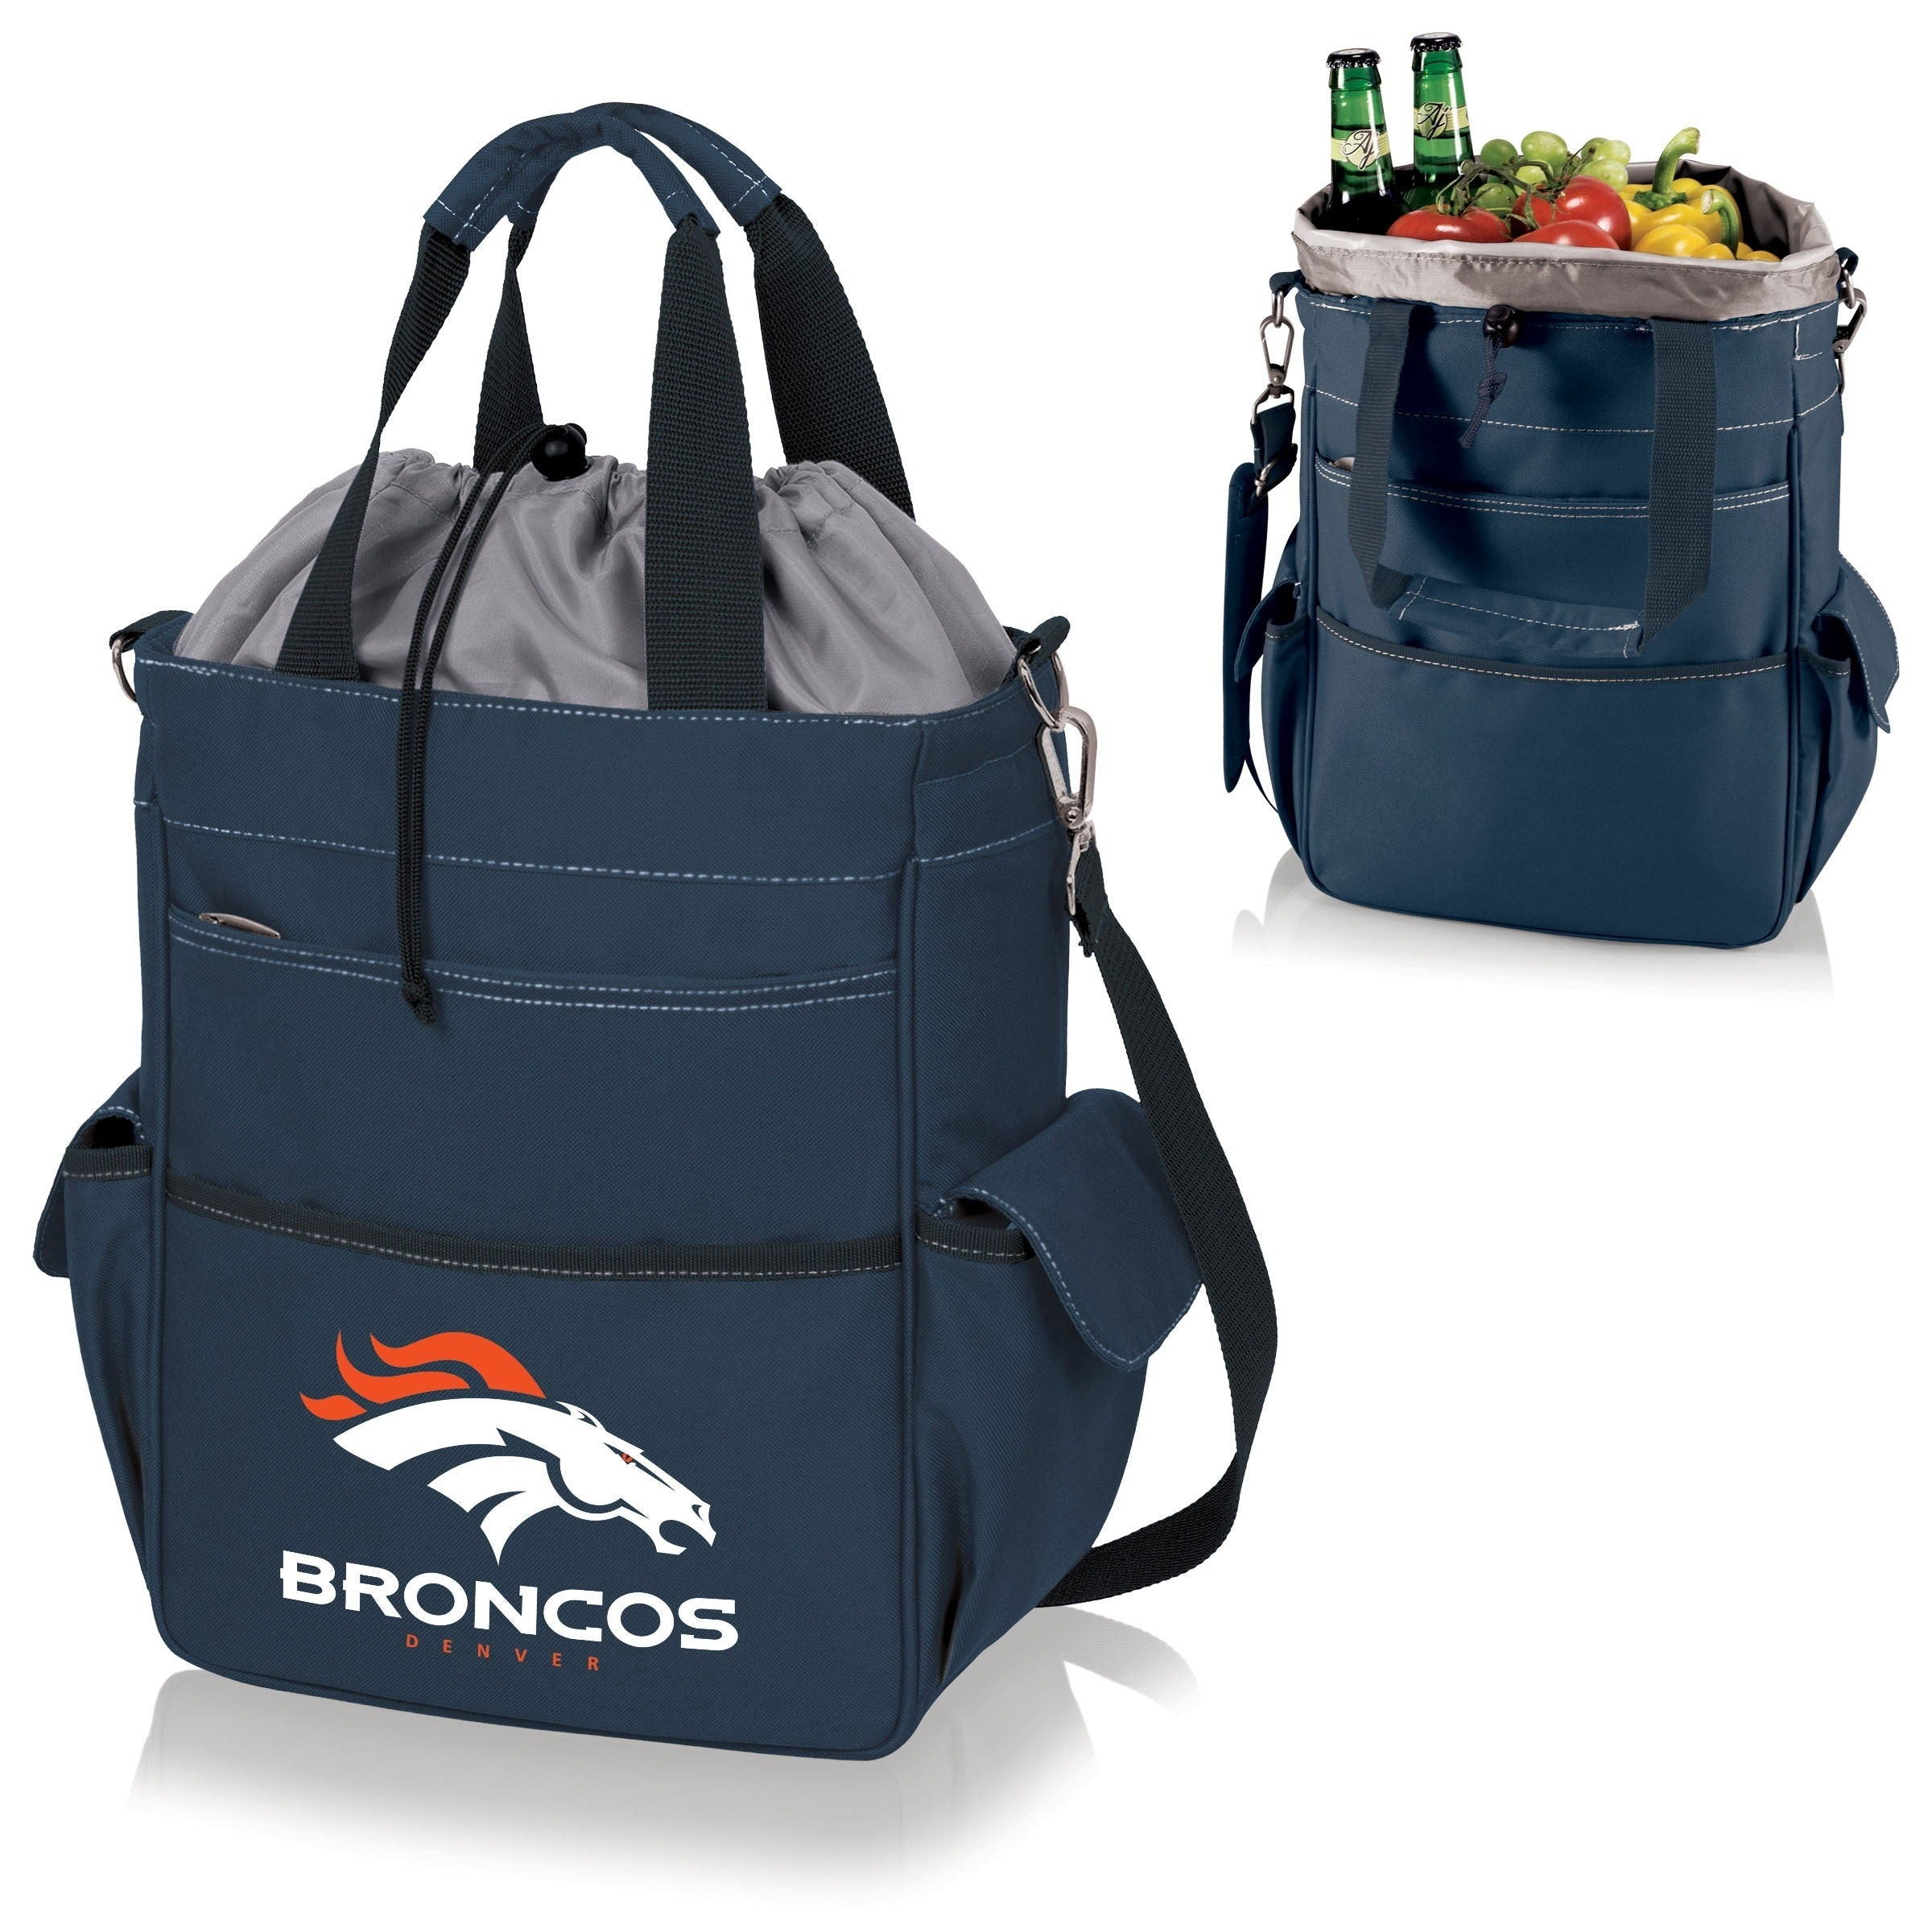 Activo Navy Tote ( Denver Broncos) navy - Diamond Home USA